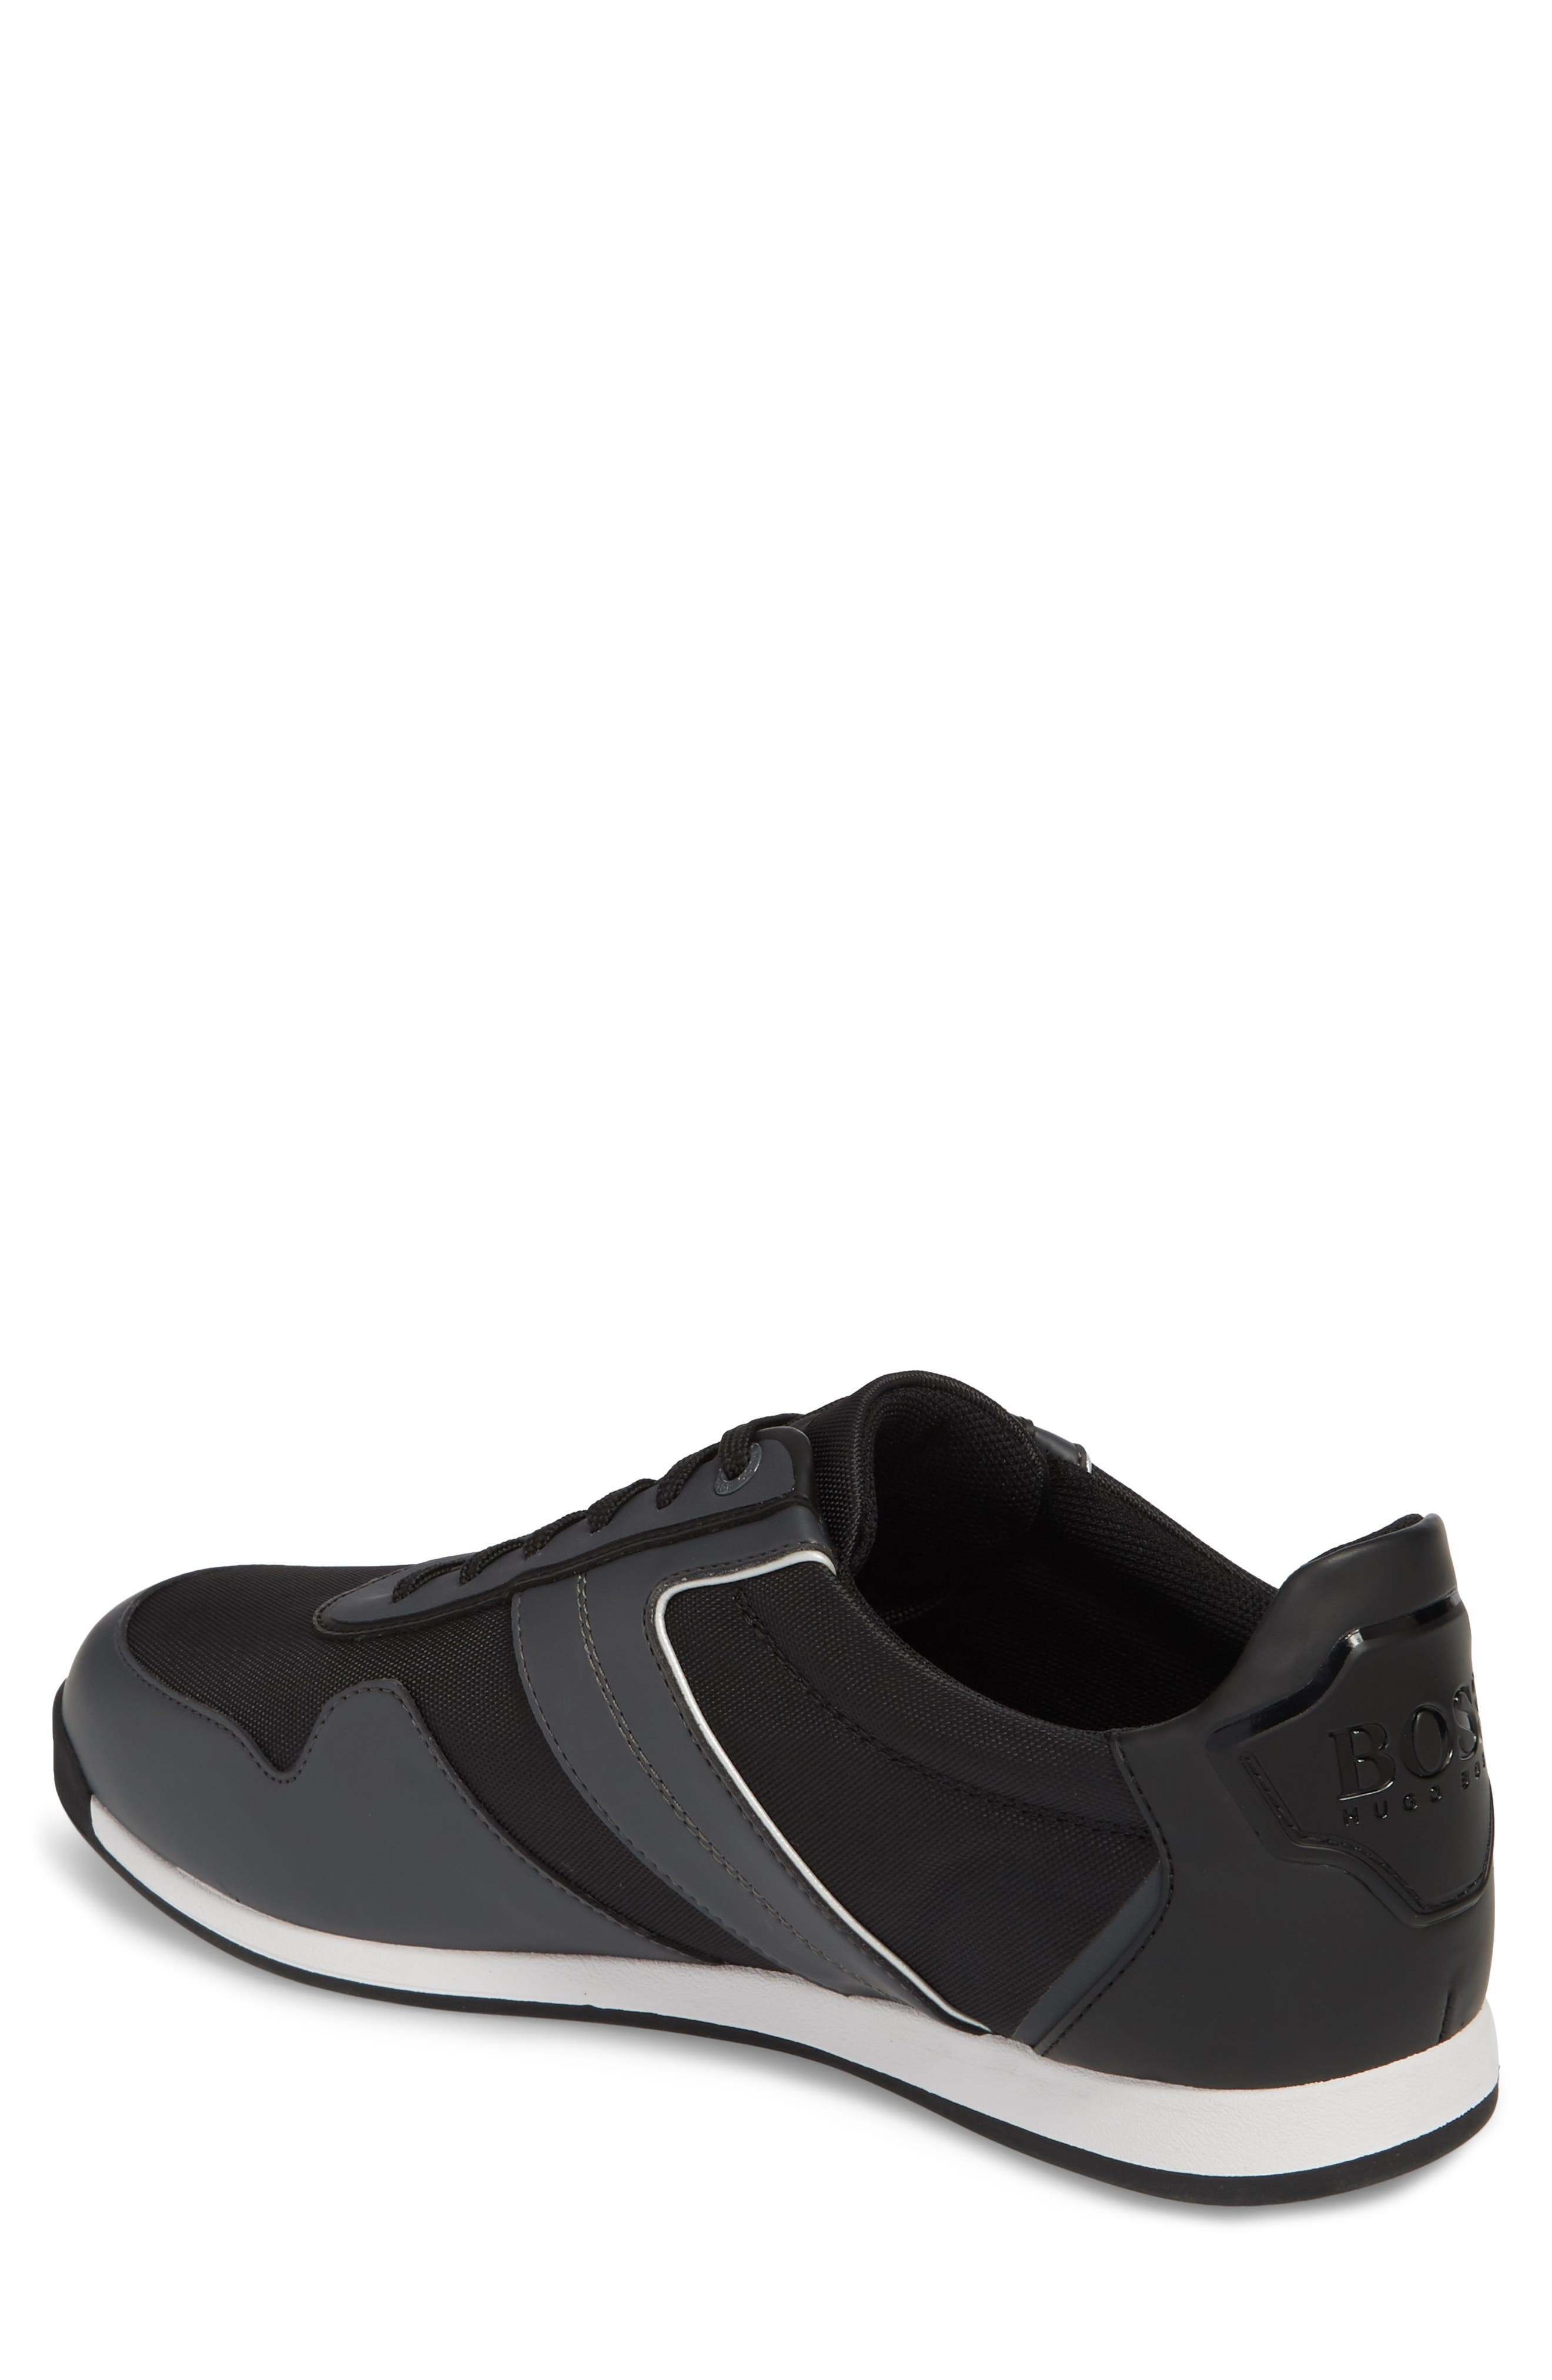 Maze Water Resistant Low Top Sneaker,                             Alternate thumbnail 2, color,                             Charcoal